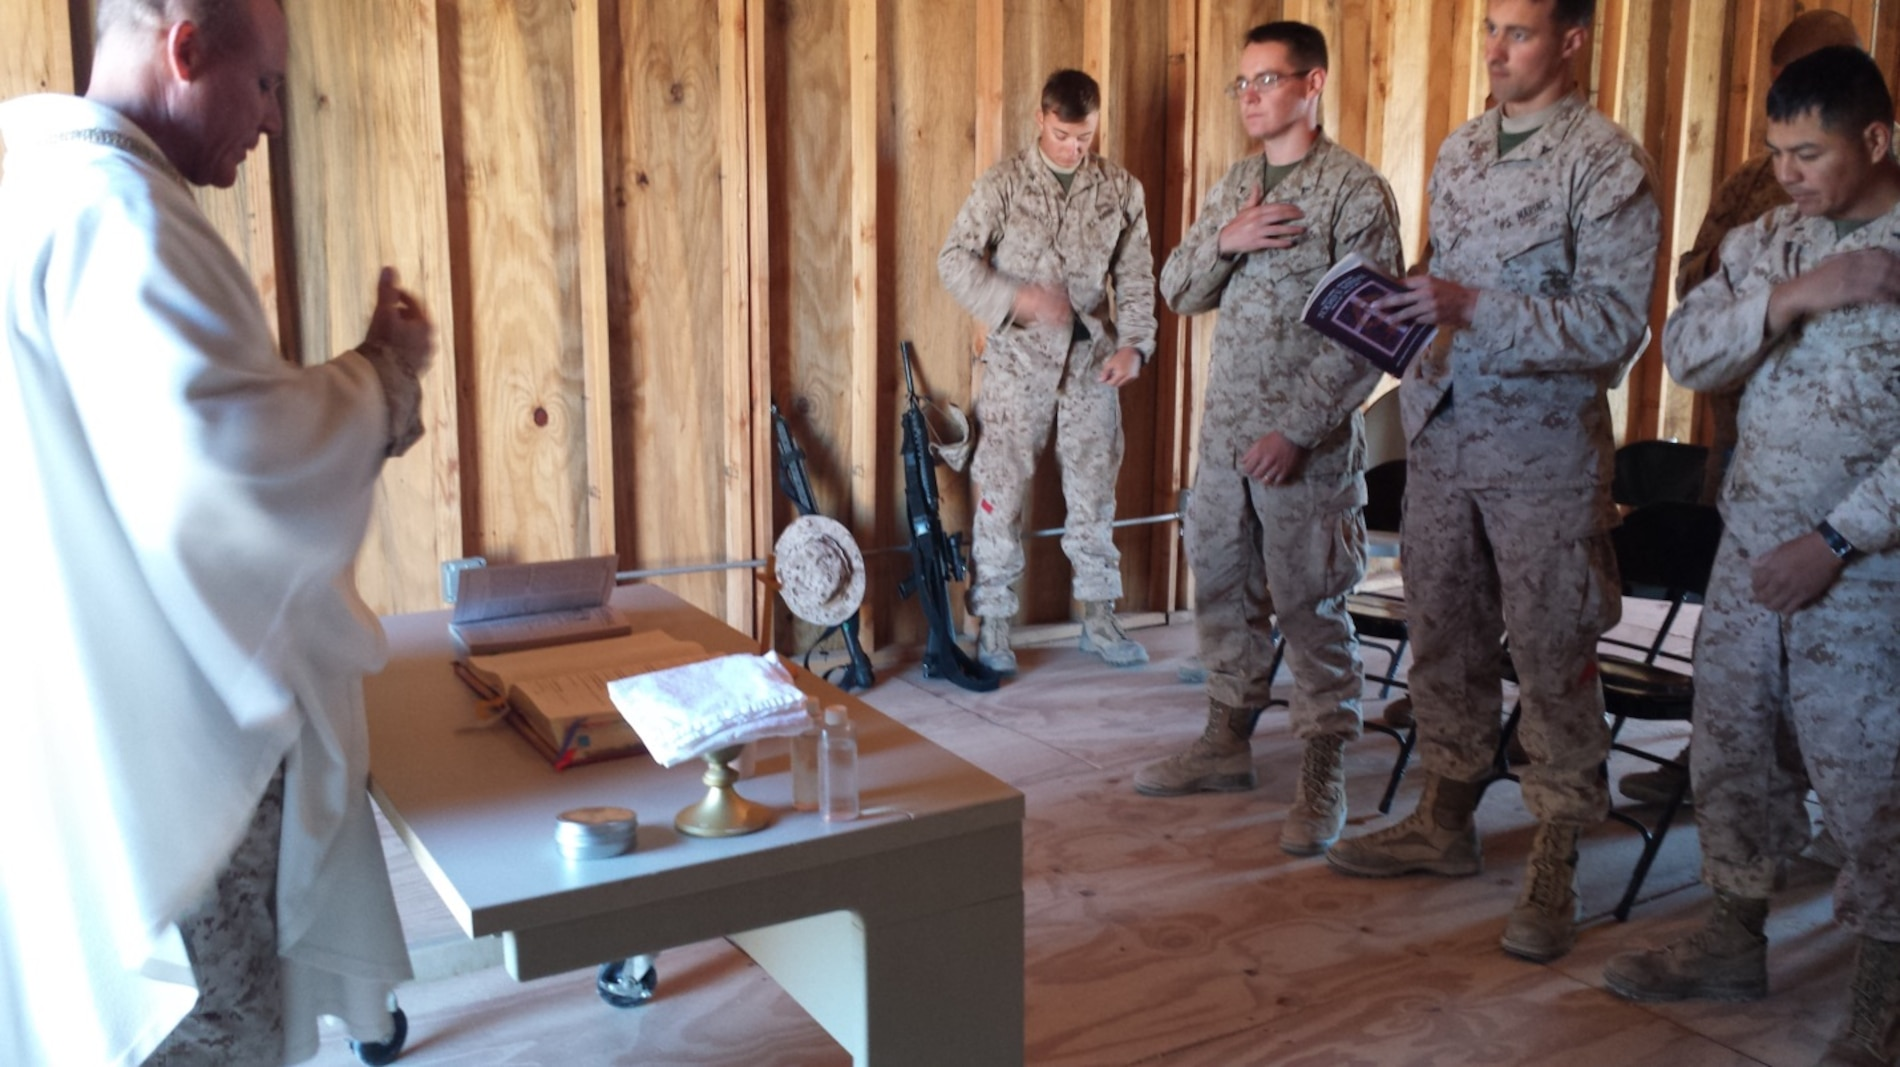 LFT to RT: Chaplain David Daigle, LCpl Brownlee, LCpl Hurla, LCpl Brady, 1st Lt Heriberto Lopez Father Daigle reading the Word of the Lord.  Building Spiritual Resiliency:  One of the great challenges of meeting the mission is being ready at all times. Desert FIREX 2015 happened to span the Holy Week for Christians of all denominations. One of the various ways the Navy Chaplain Corps helps to ensure Marines and Sailors are growing in their faith is through field worships services.  Attending Easter Protestant Field Service during DESERTFIREX.  Service was provided by Chaplain Slaughter. Chaplain Slaughter provided nightly devotionals throughout the field operation. However, Easter Sunday is a special day in the eyes of many Marines and Sailors. For many this was a time to celebrate their faith. For some it was a time to rekindle their relationship with the divine. In this picture, some of the 15 attendees to the Protestant Service are gathering.